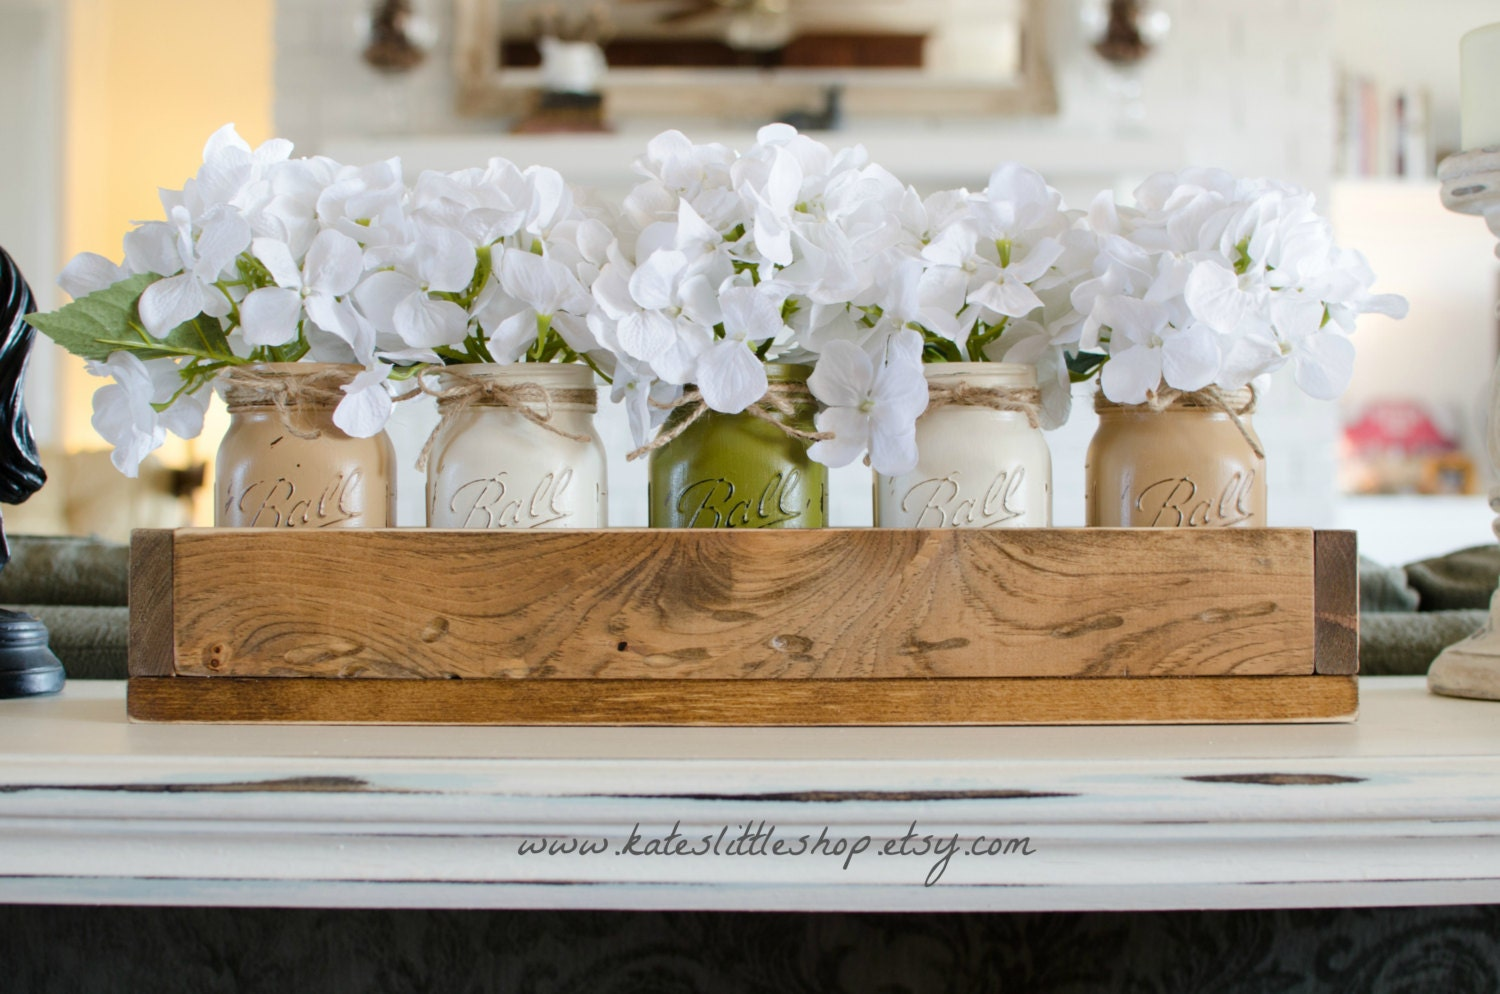 Custom Made Rustic Planter Box With 5 Painted Mason Jars Painted Mason Jars Wedding